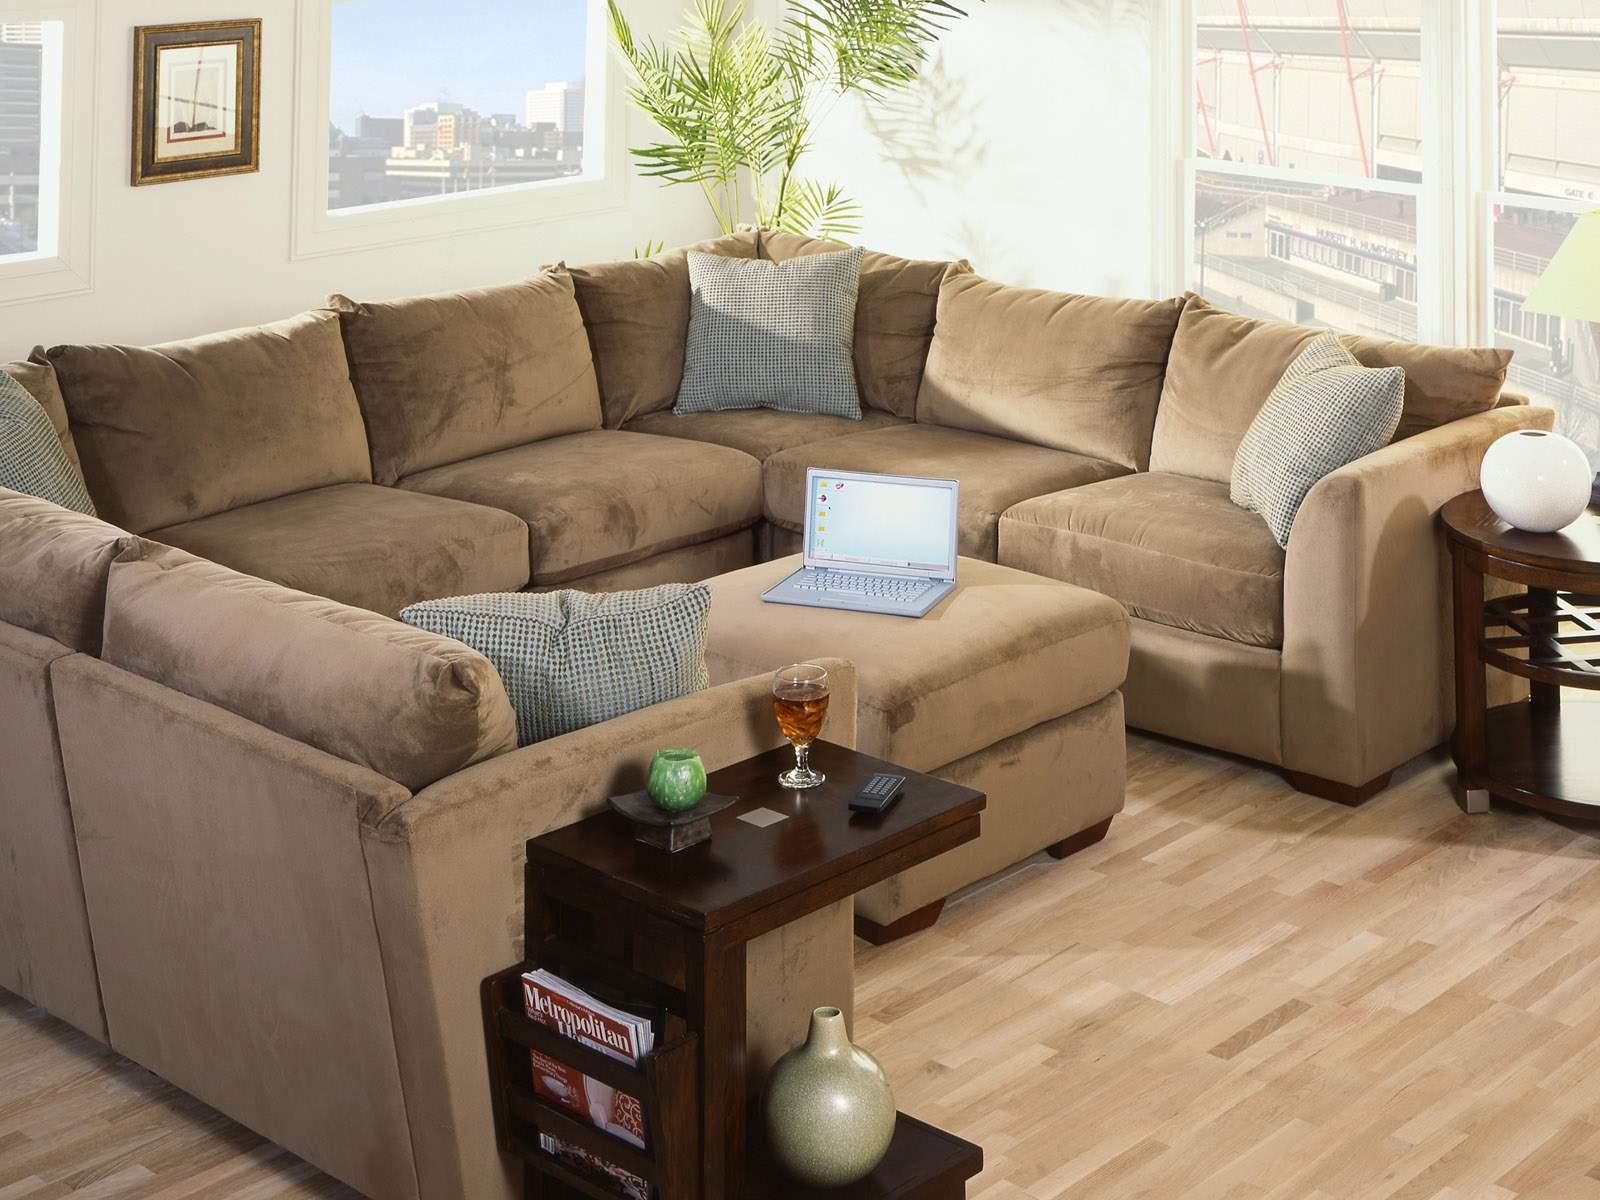 Interior design ideas Sofa for living room